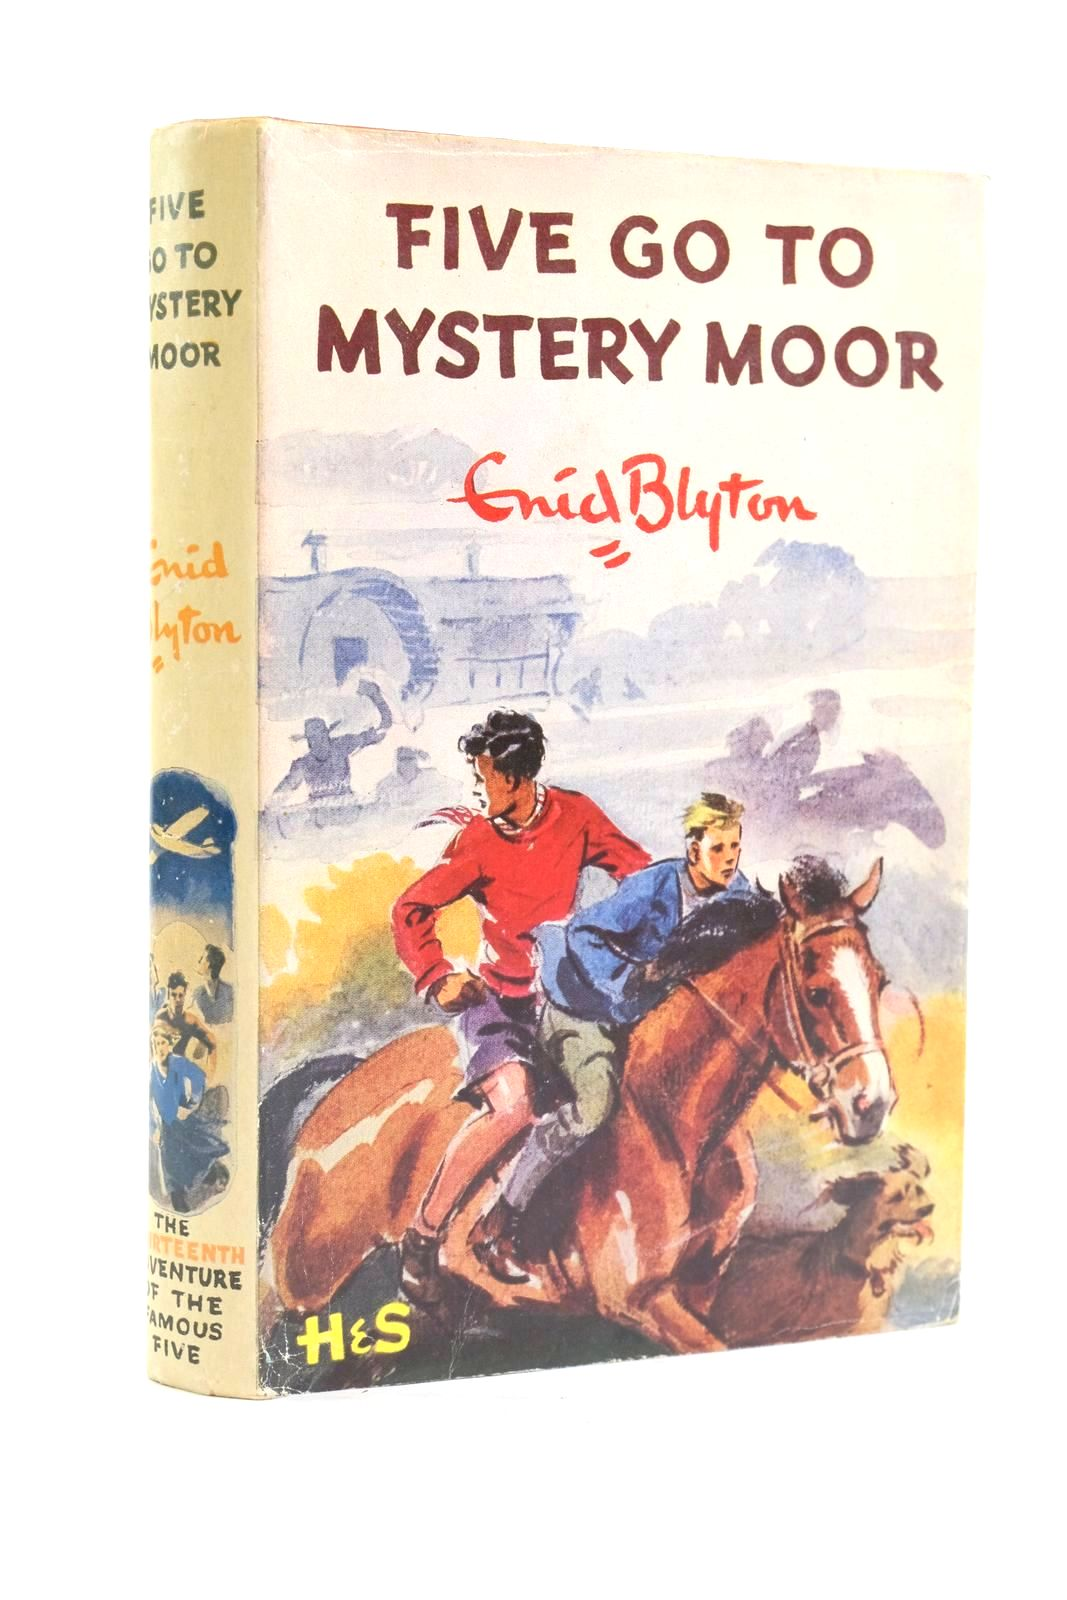 Photo of FIVE GO TO MYSTERY MOOR written by Blyton, Enid illustrated by Soper, Eileen published by Hodder & Stoughton (STOCK CODE: 1319944)  for sale by Stella & Rose's Books